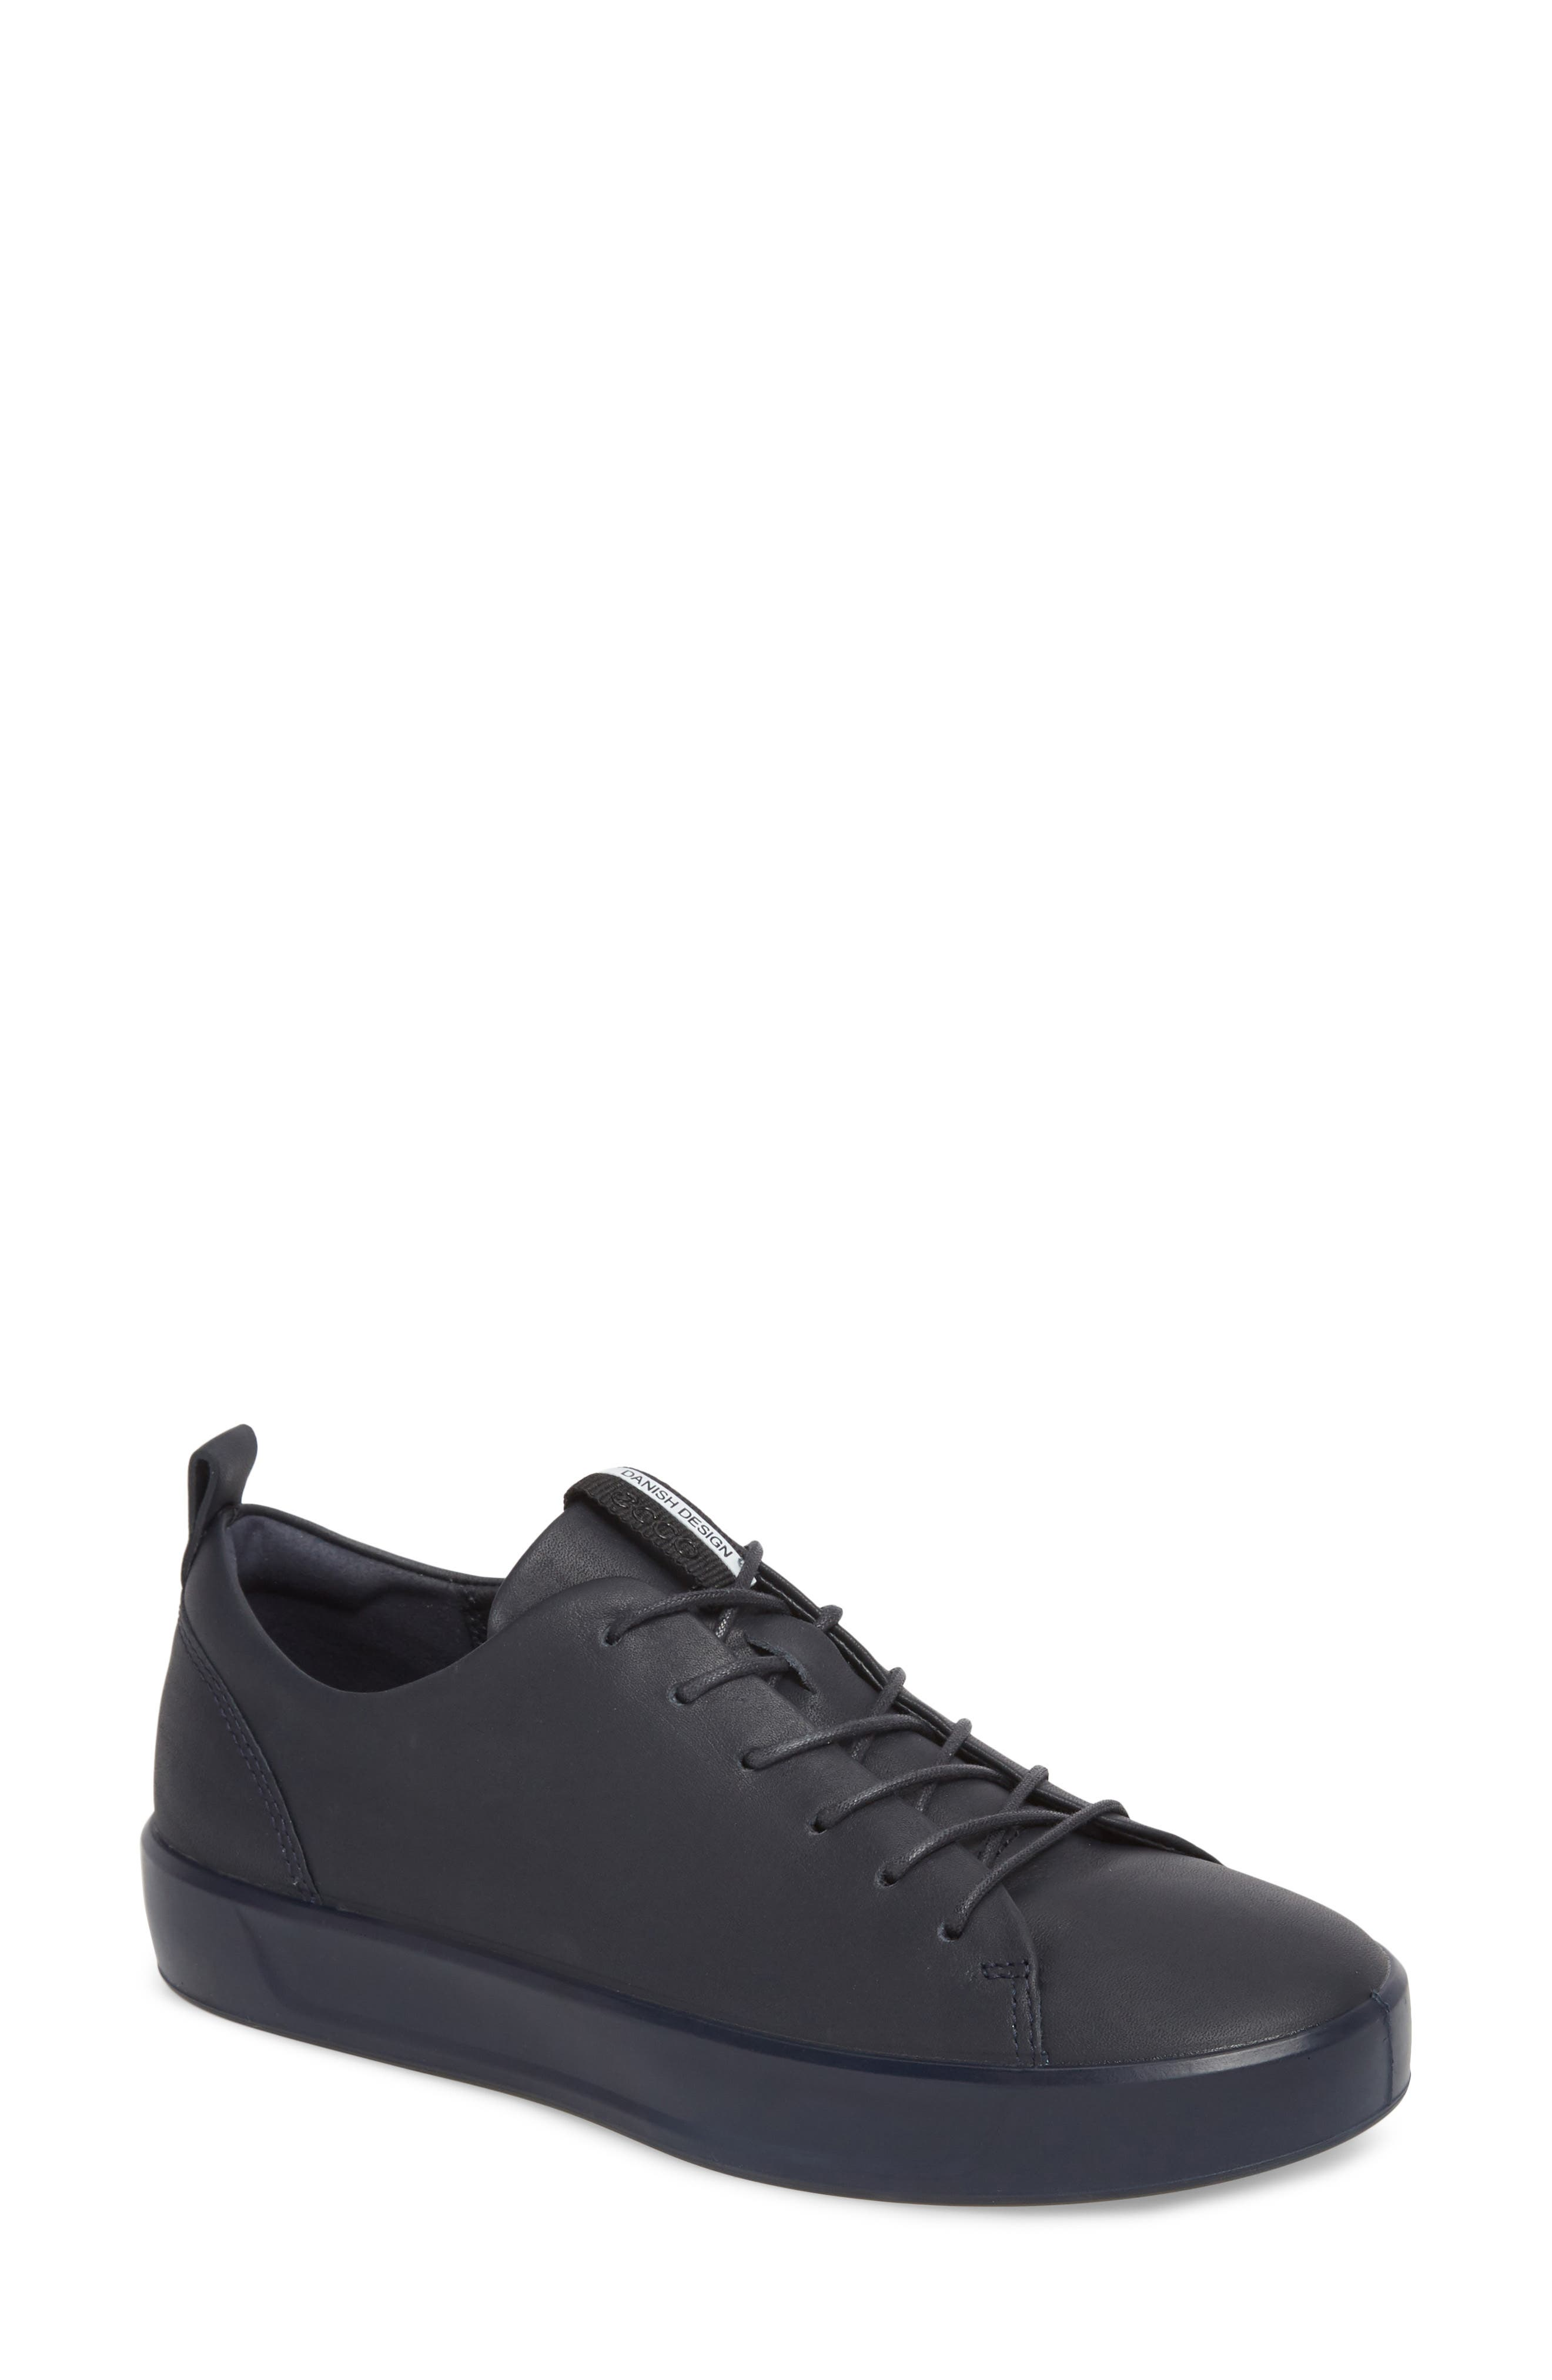 Soft 8 Sneaker,                         Main,                         color, NIGHT SKY LEATHER